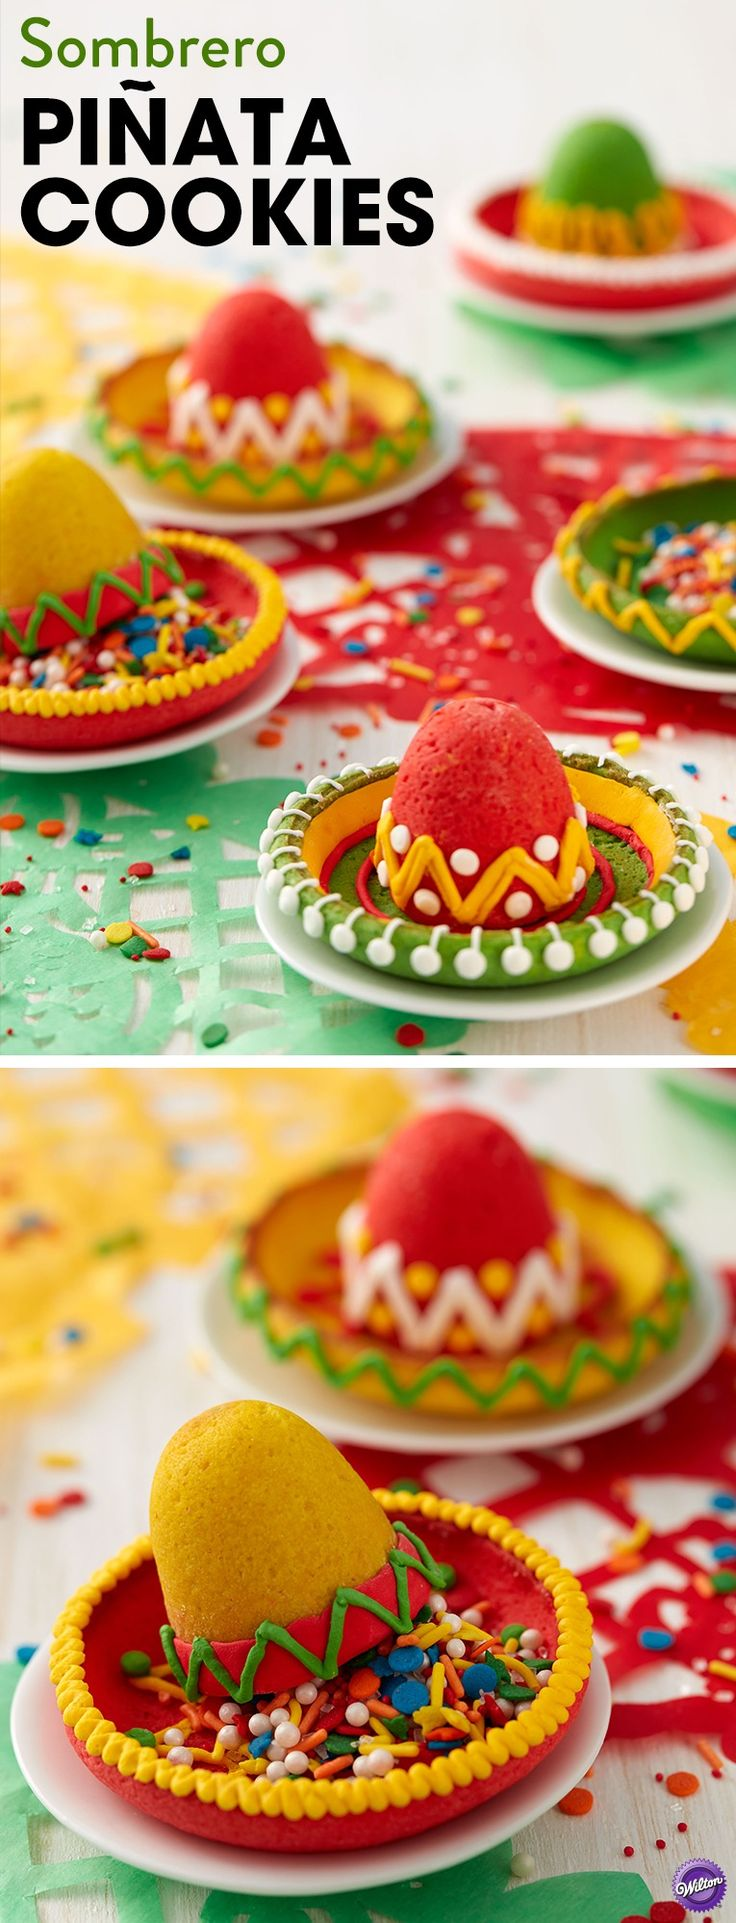 These Sombrero Pinata Cookies are perfect for your fiesta! Click to get the full instructions from JoAnn.com!